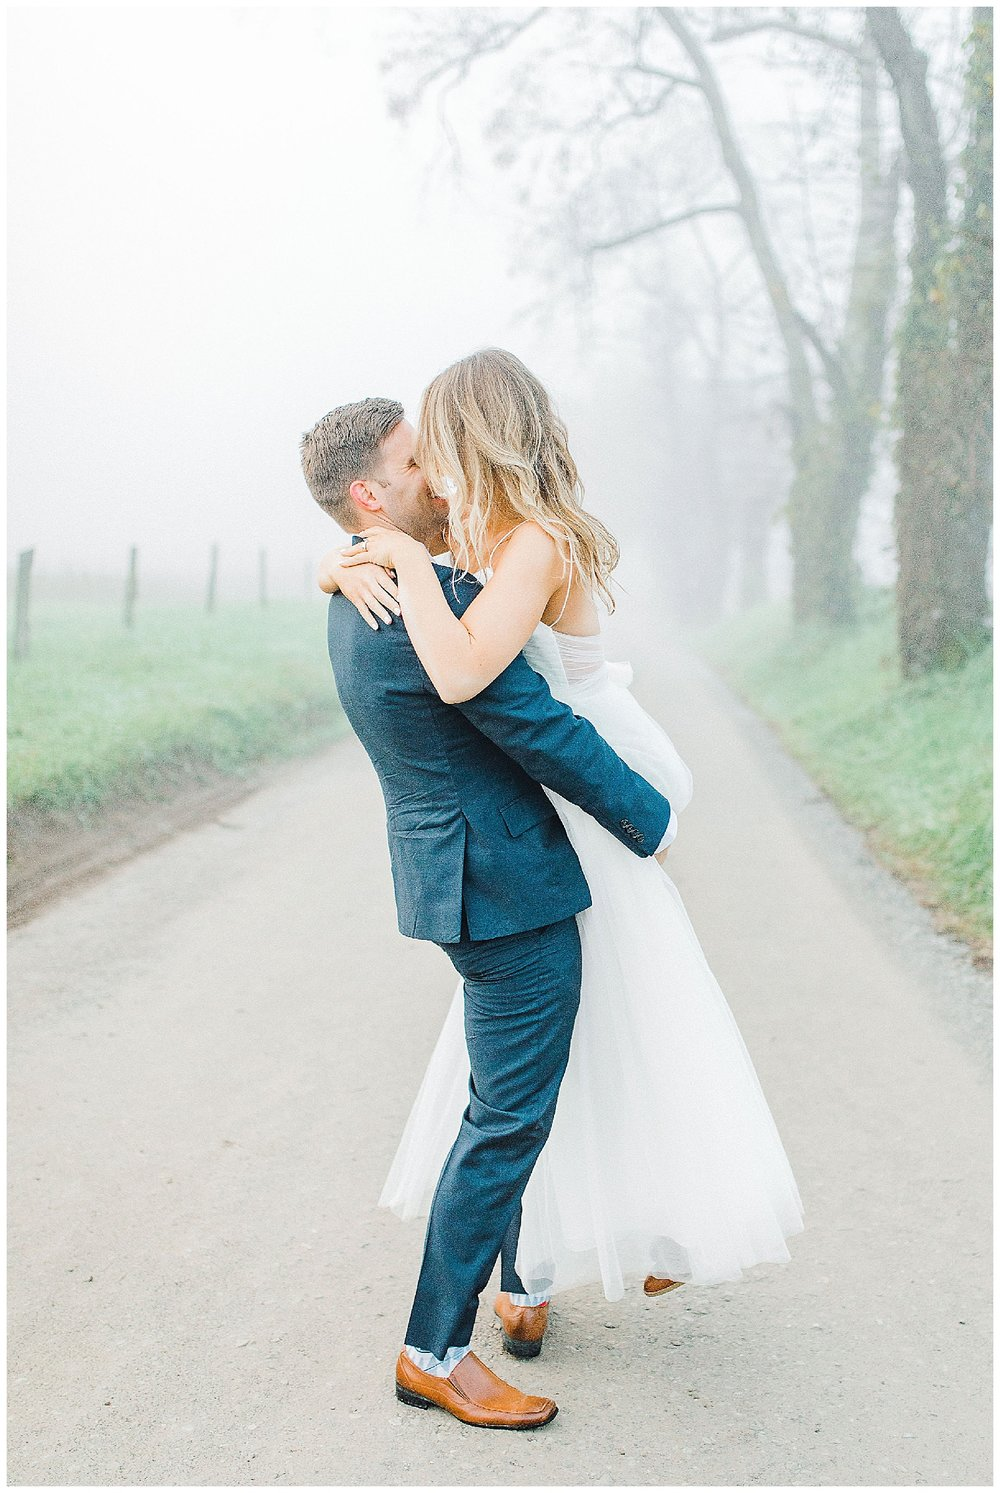 Emma Rose Company recently got to travel all the way to Nashville to photograph the most beautiful post-wedding bride and groom portraits in the Great Smoky Mountains with a gorgeous couple! Nashville wedding inspiration at it's finest._0011.jpg